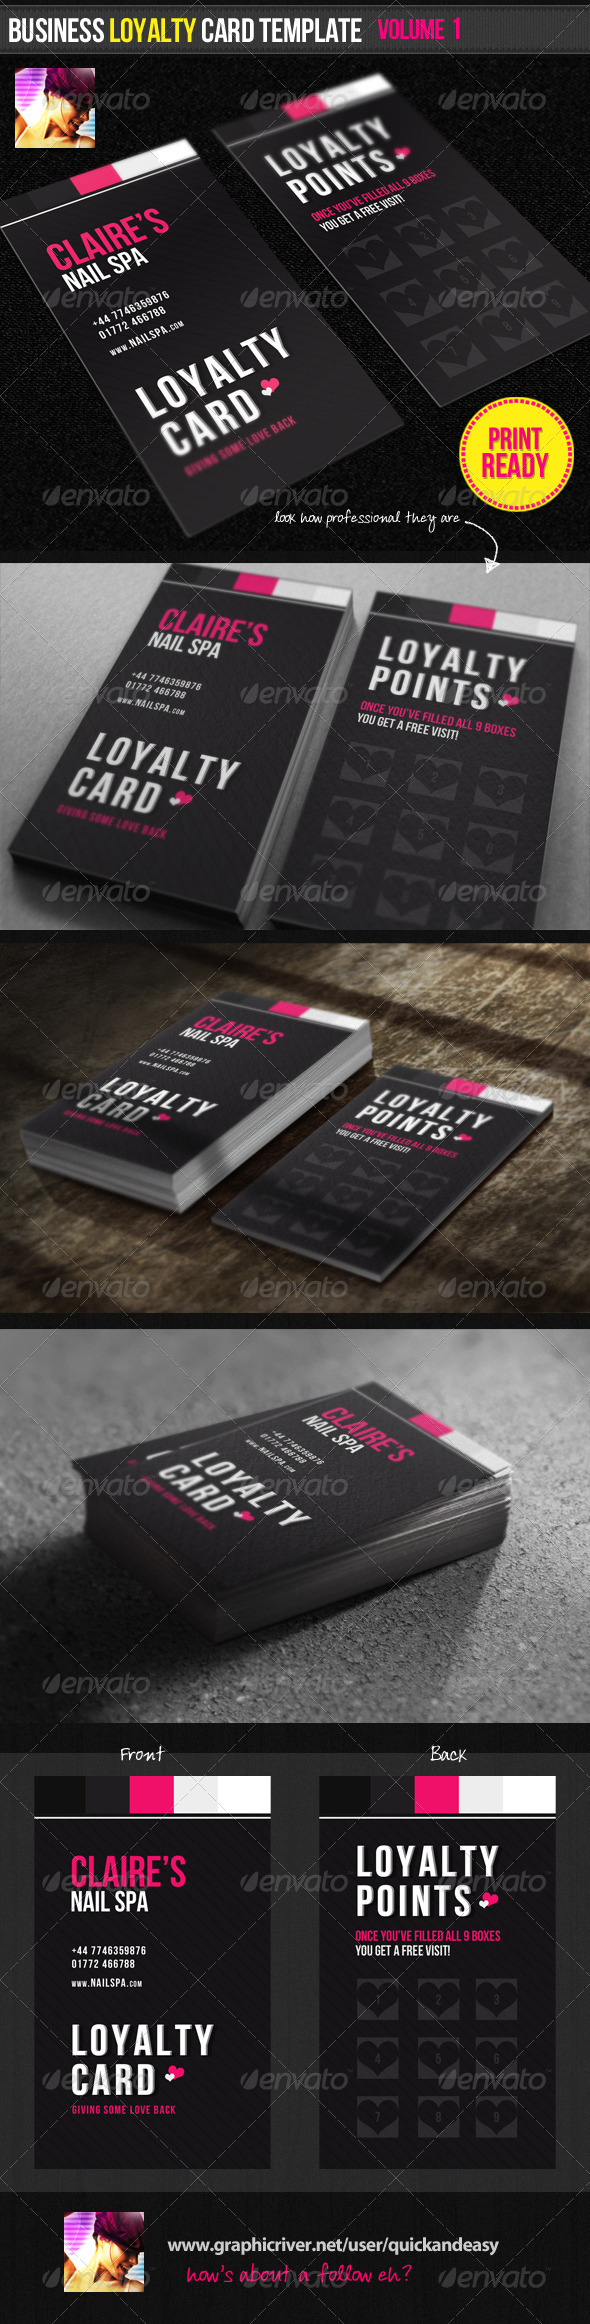 Business Loyalty Card Template Vol.1 - Loyalty Cards Cards & Invites